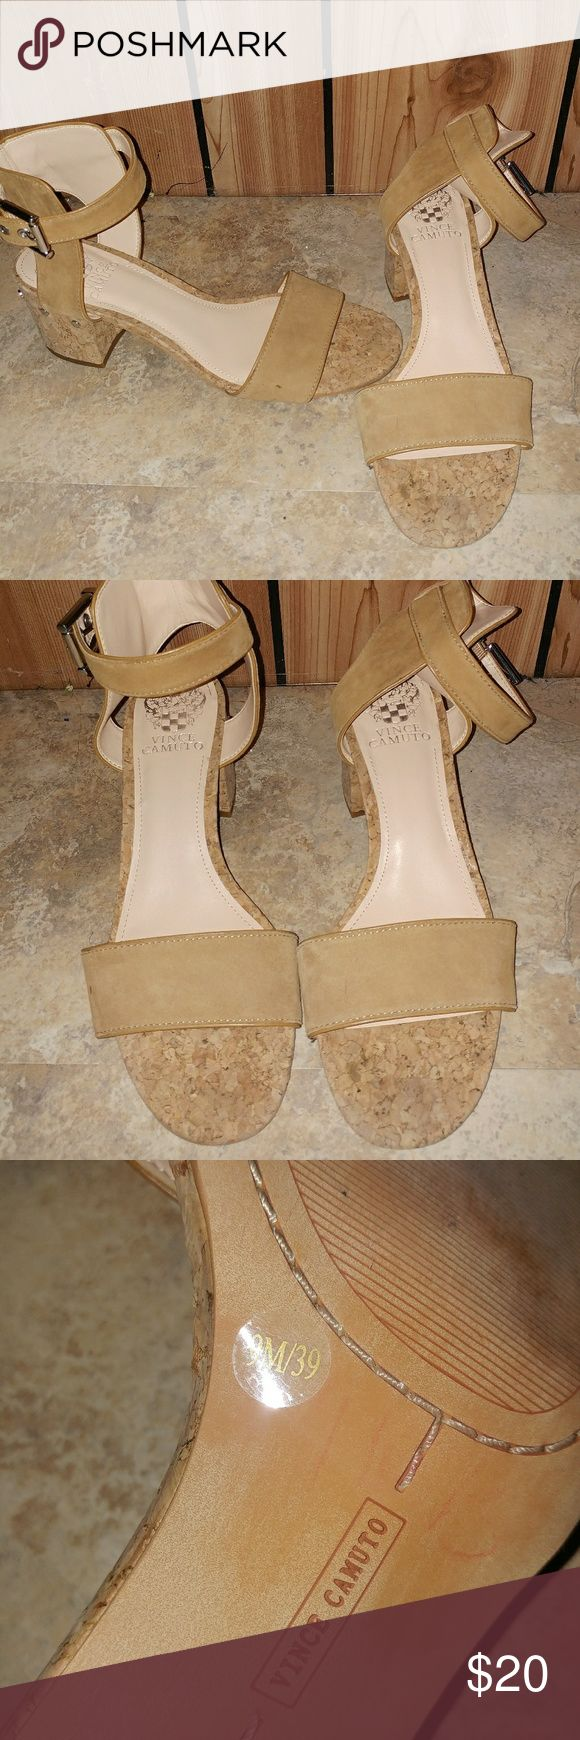 Vince Camuto Strappy Heeled Sandals This is a pair of camel colored Strappy sandals by Vince Camuto. Super cute and comfortable. Have some wear that can be seen on the bottoms. Have some cool silver detailing on the sides. The straps are adjustable. Vince Camuto Shoes Sandals